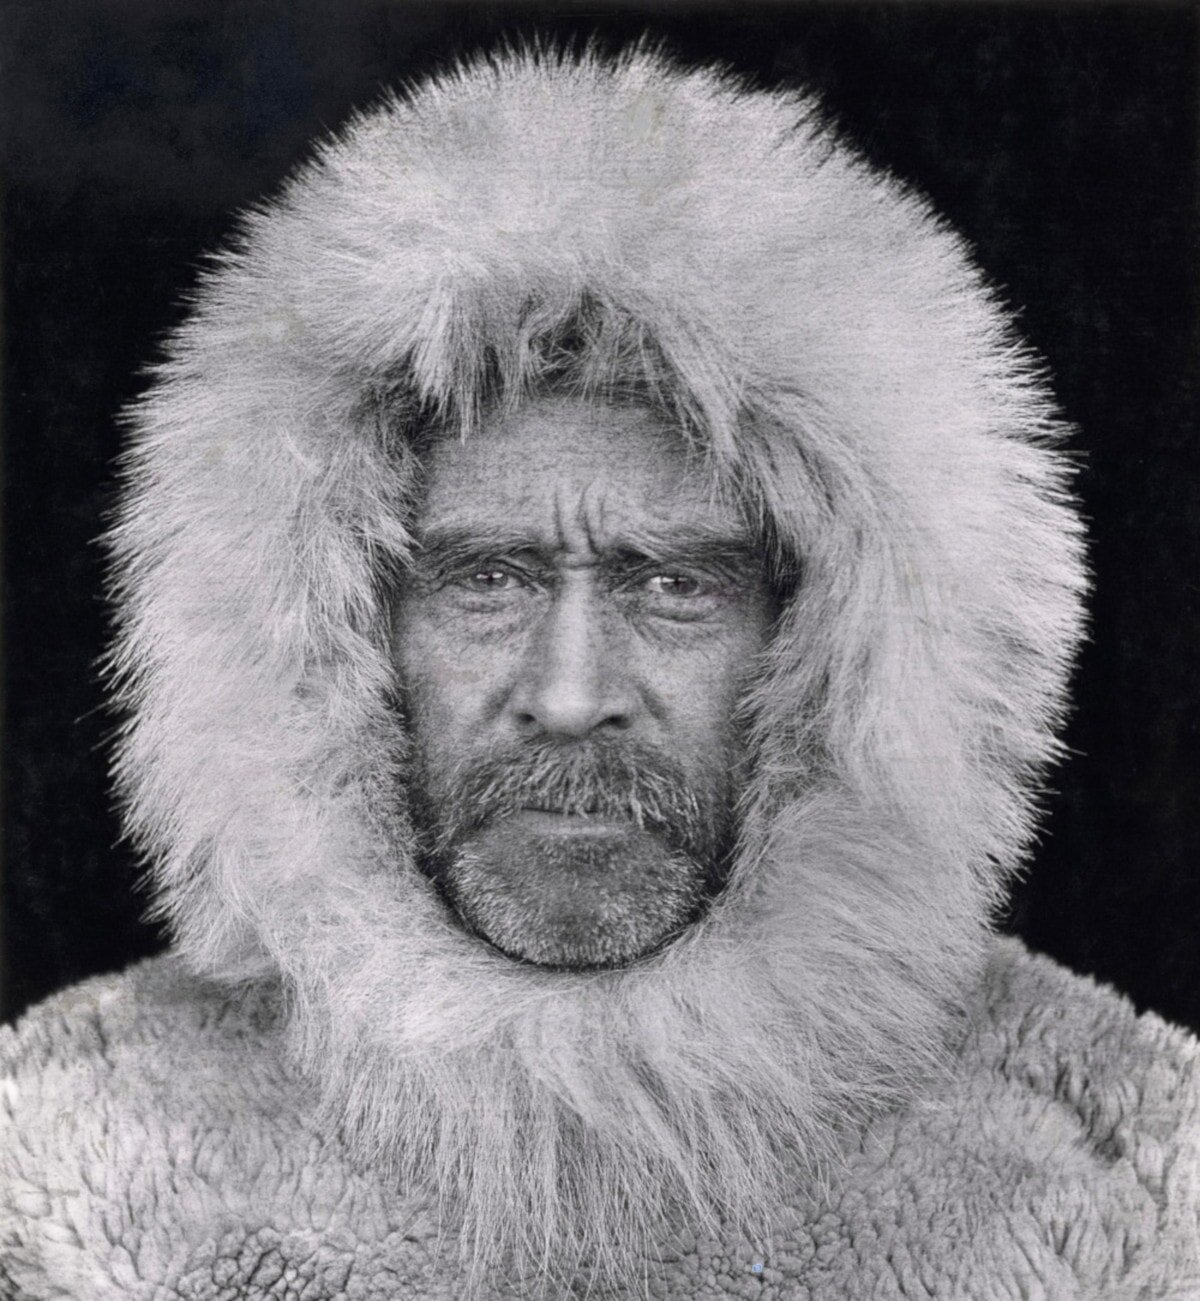 Robert Peary was one of the great explorers of the world to travel to the Arctic.